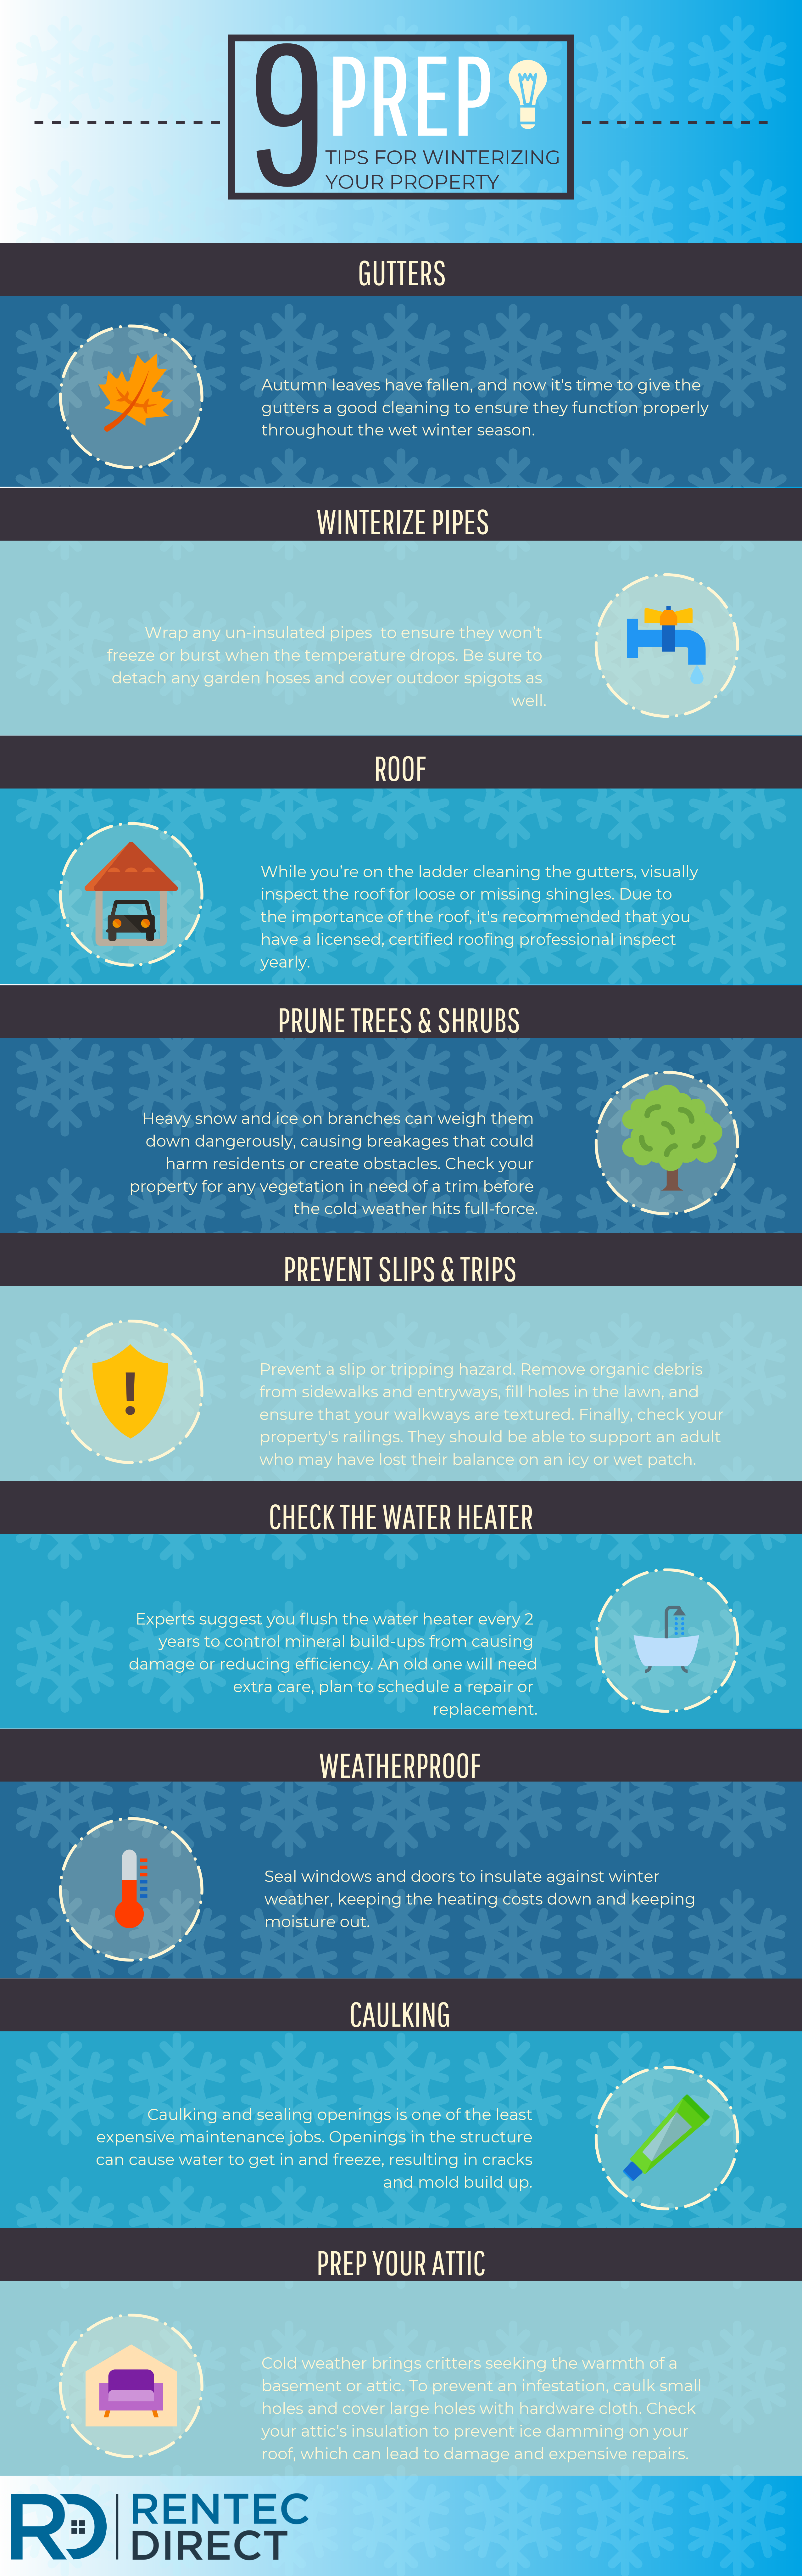 winterize your property